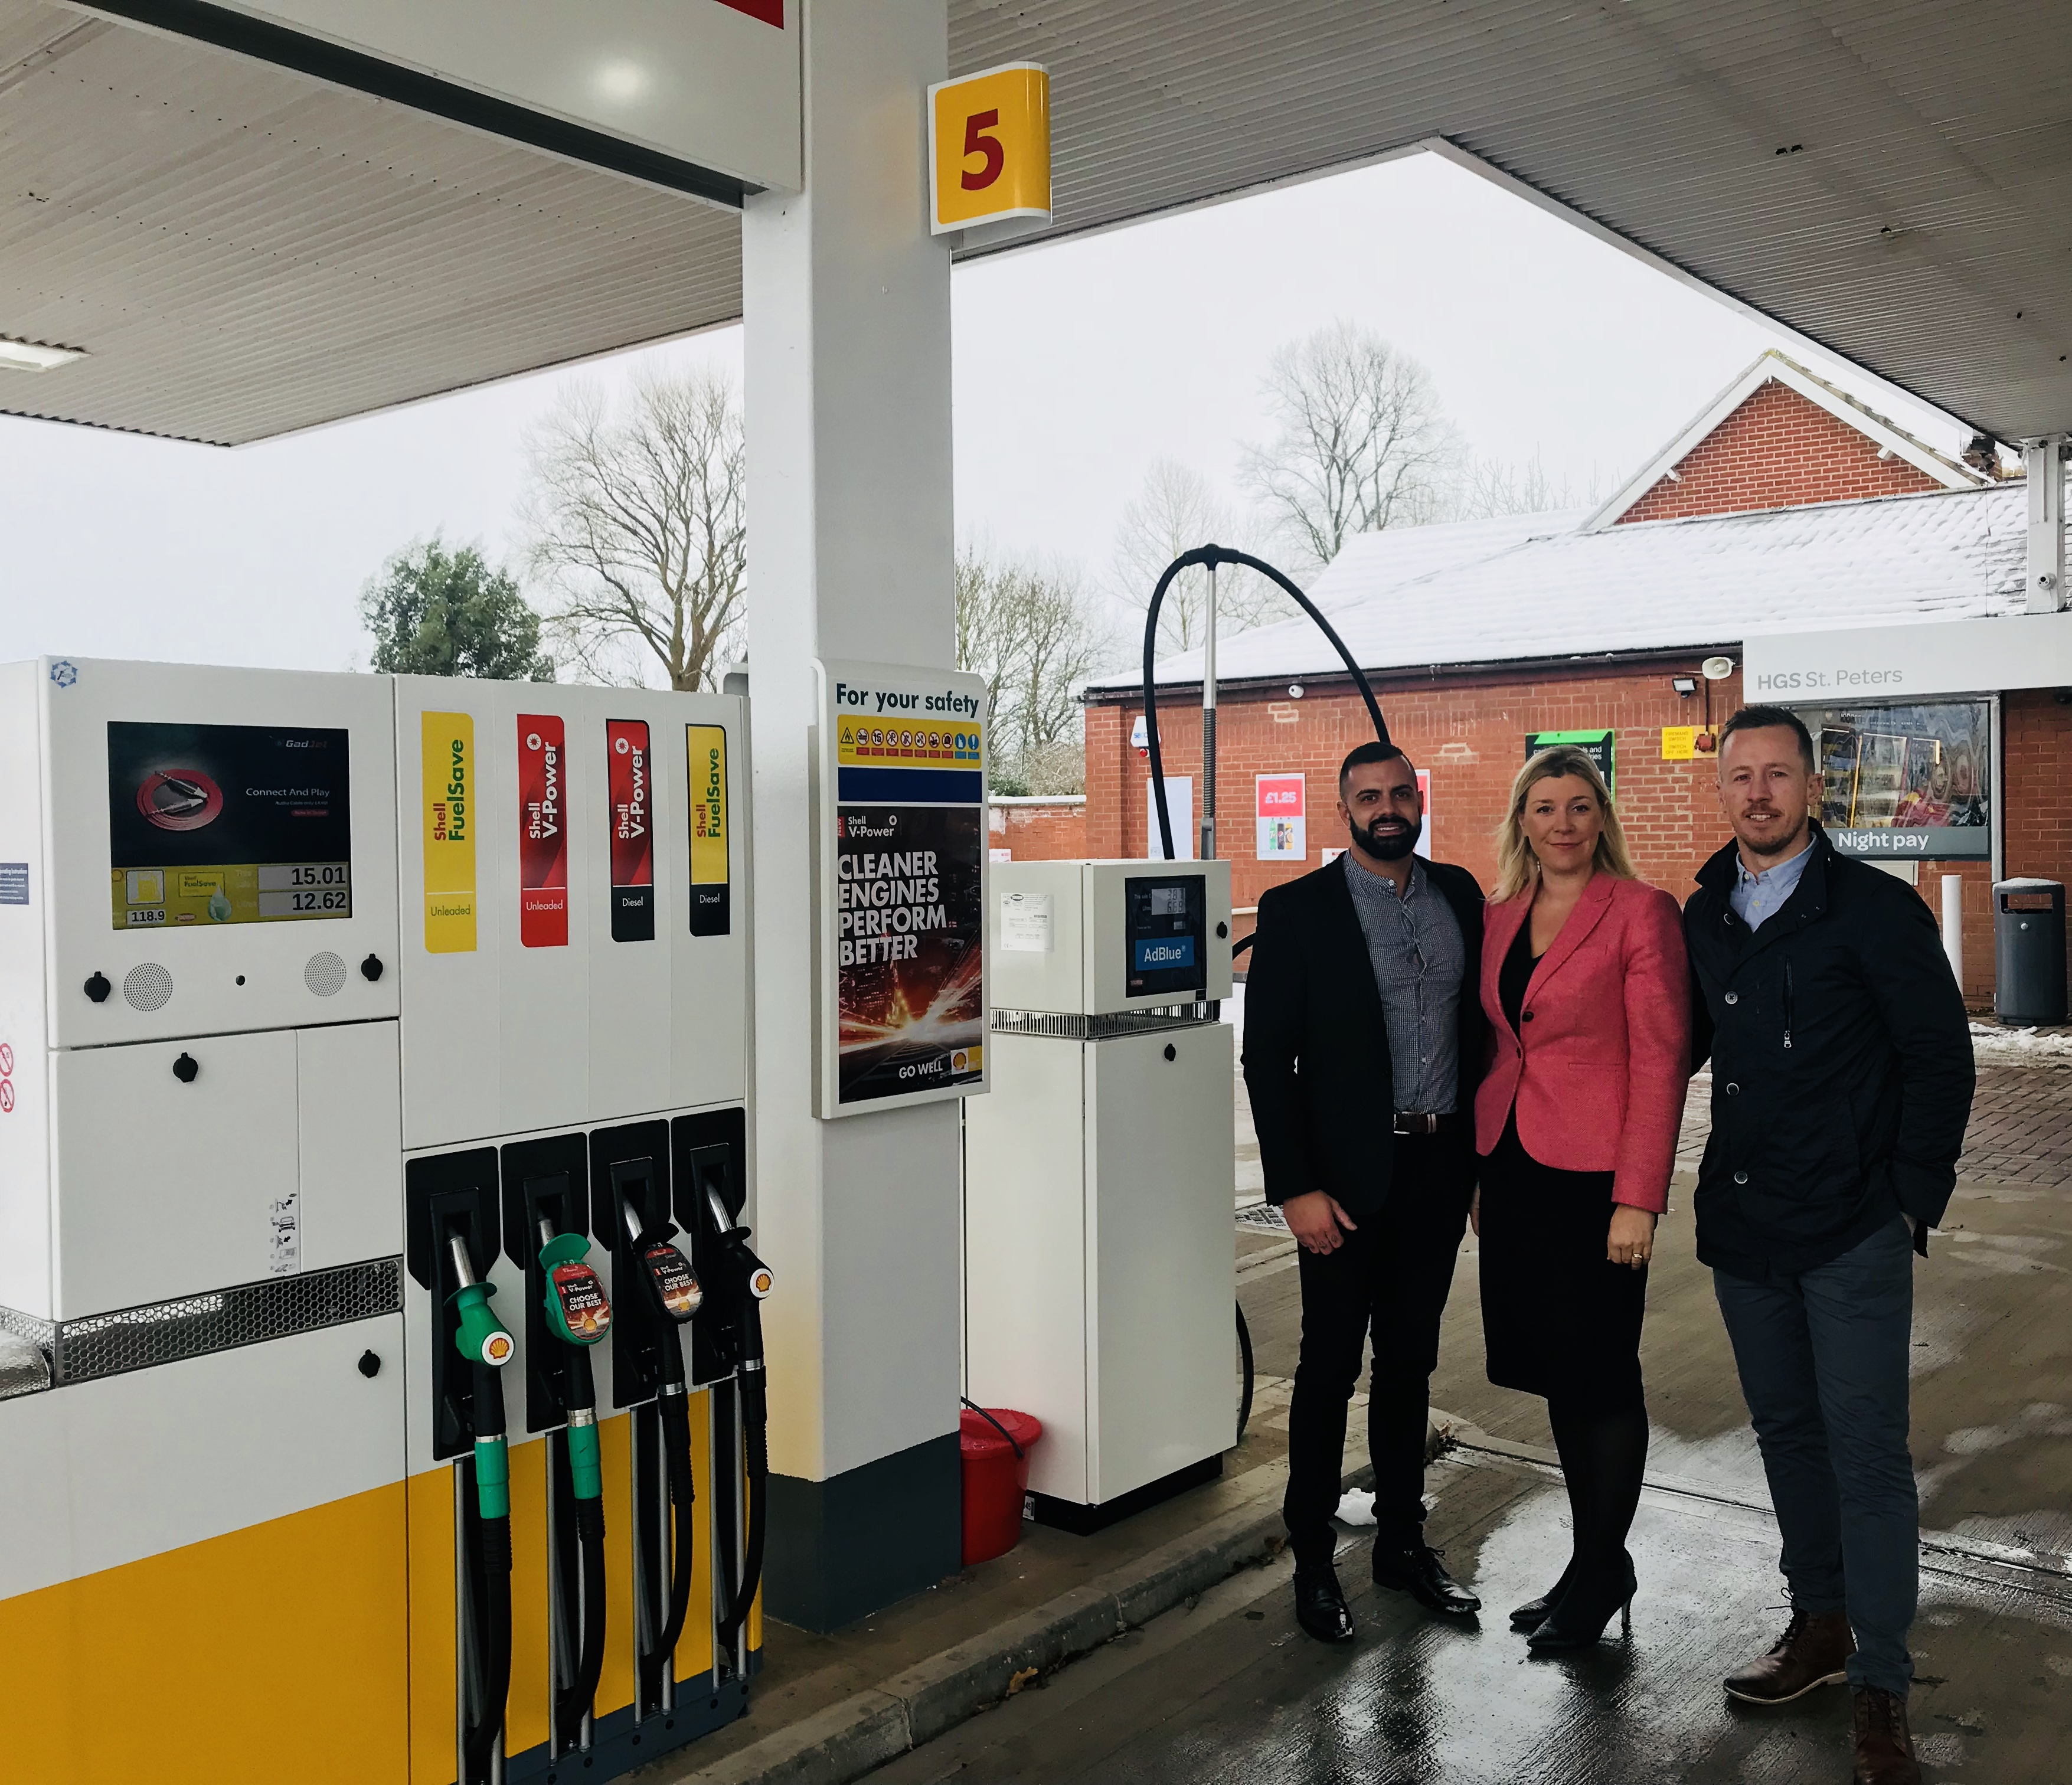 Shell Garages: Deal Brings 10 New Jobs At Leicester Petrol Station